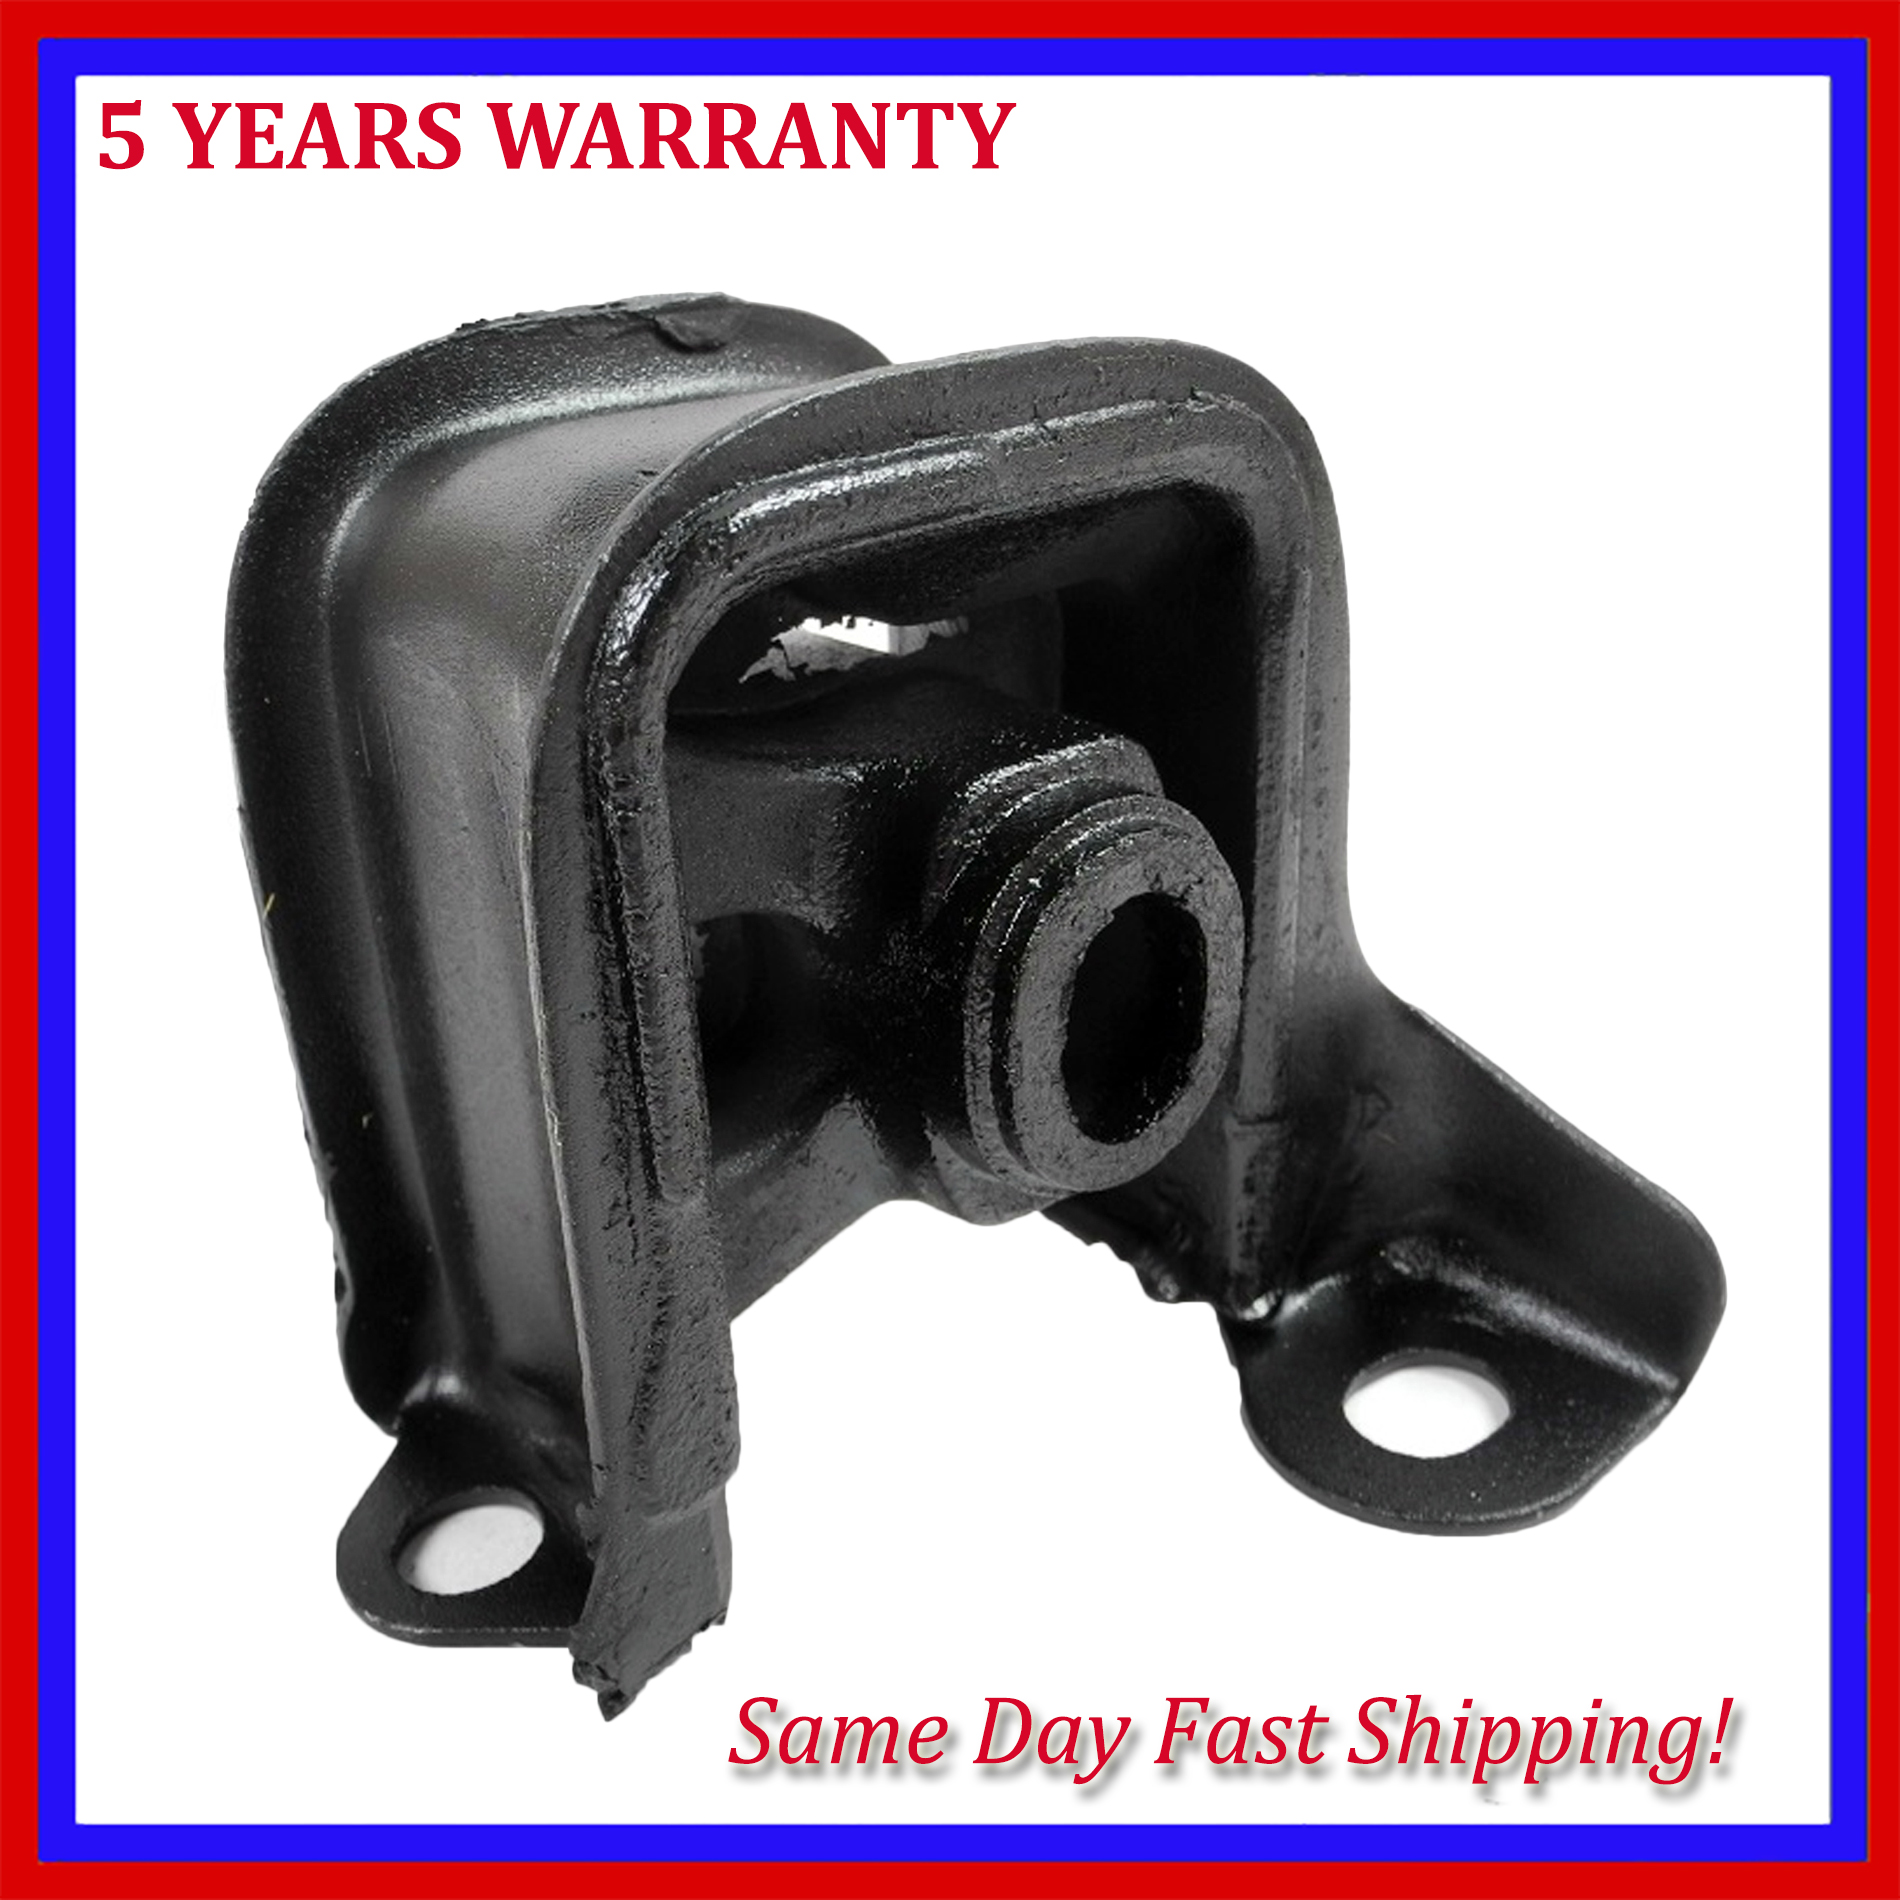 Standard Engine Motor Mount For Front Acura Cl Honda Accord 2 2l 2 3l 6530 Ebay